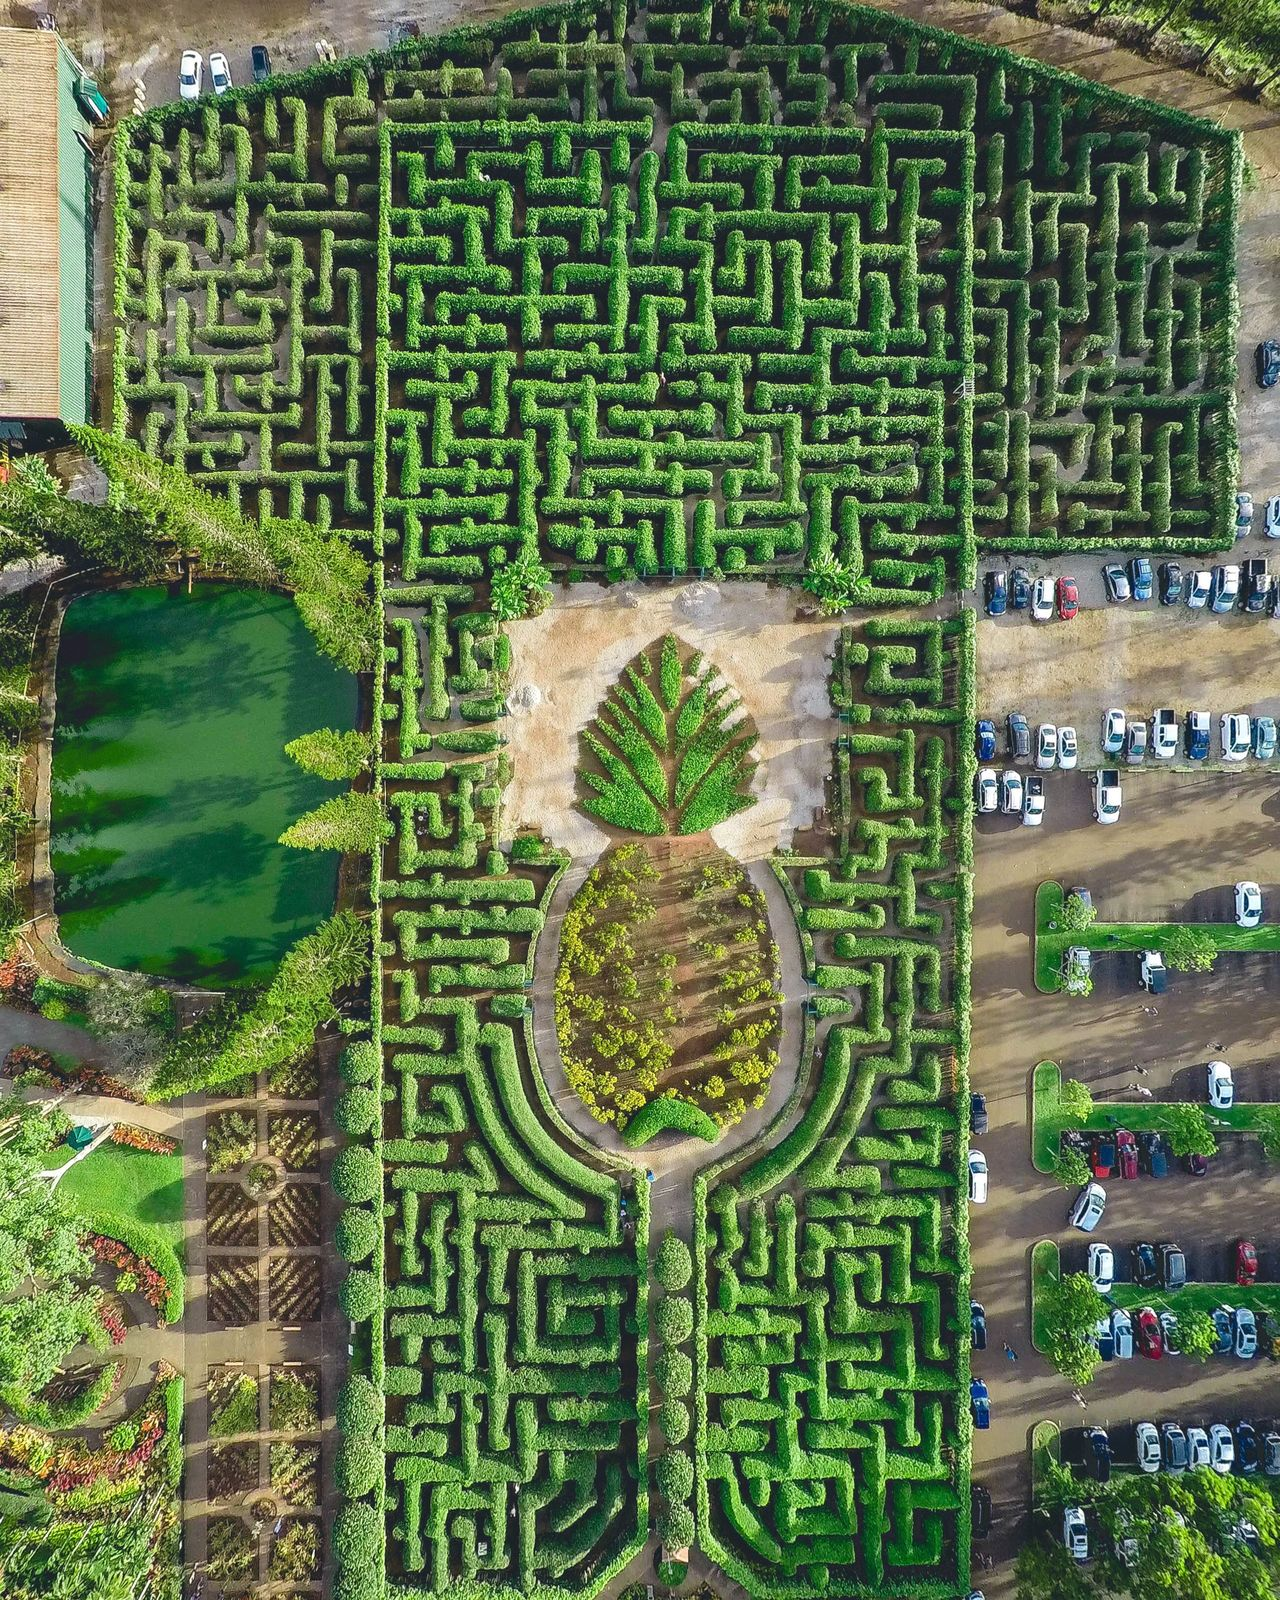 Sometimes life IS a game. Enjoy it. gGreen ColorbBrick WallnNo PeoplegGrowthaArchitectureoOutdoorsdDayHHawaiinNo Pepole33drsolodDronephotographyDDrone bBeauty In NatureTTreesMMazepPinappleAAerial ShotaAerial Photography